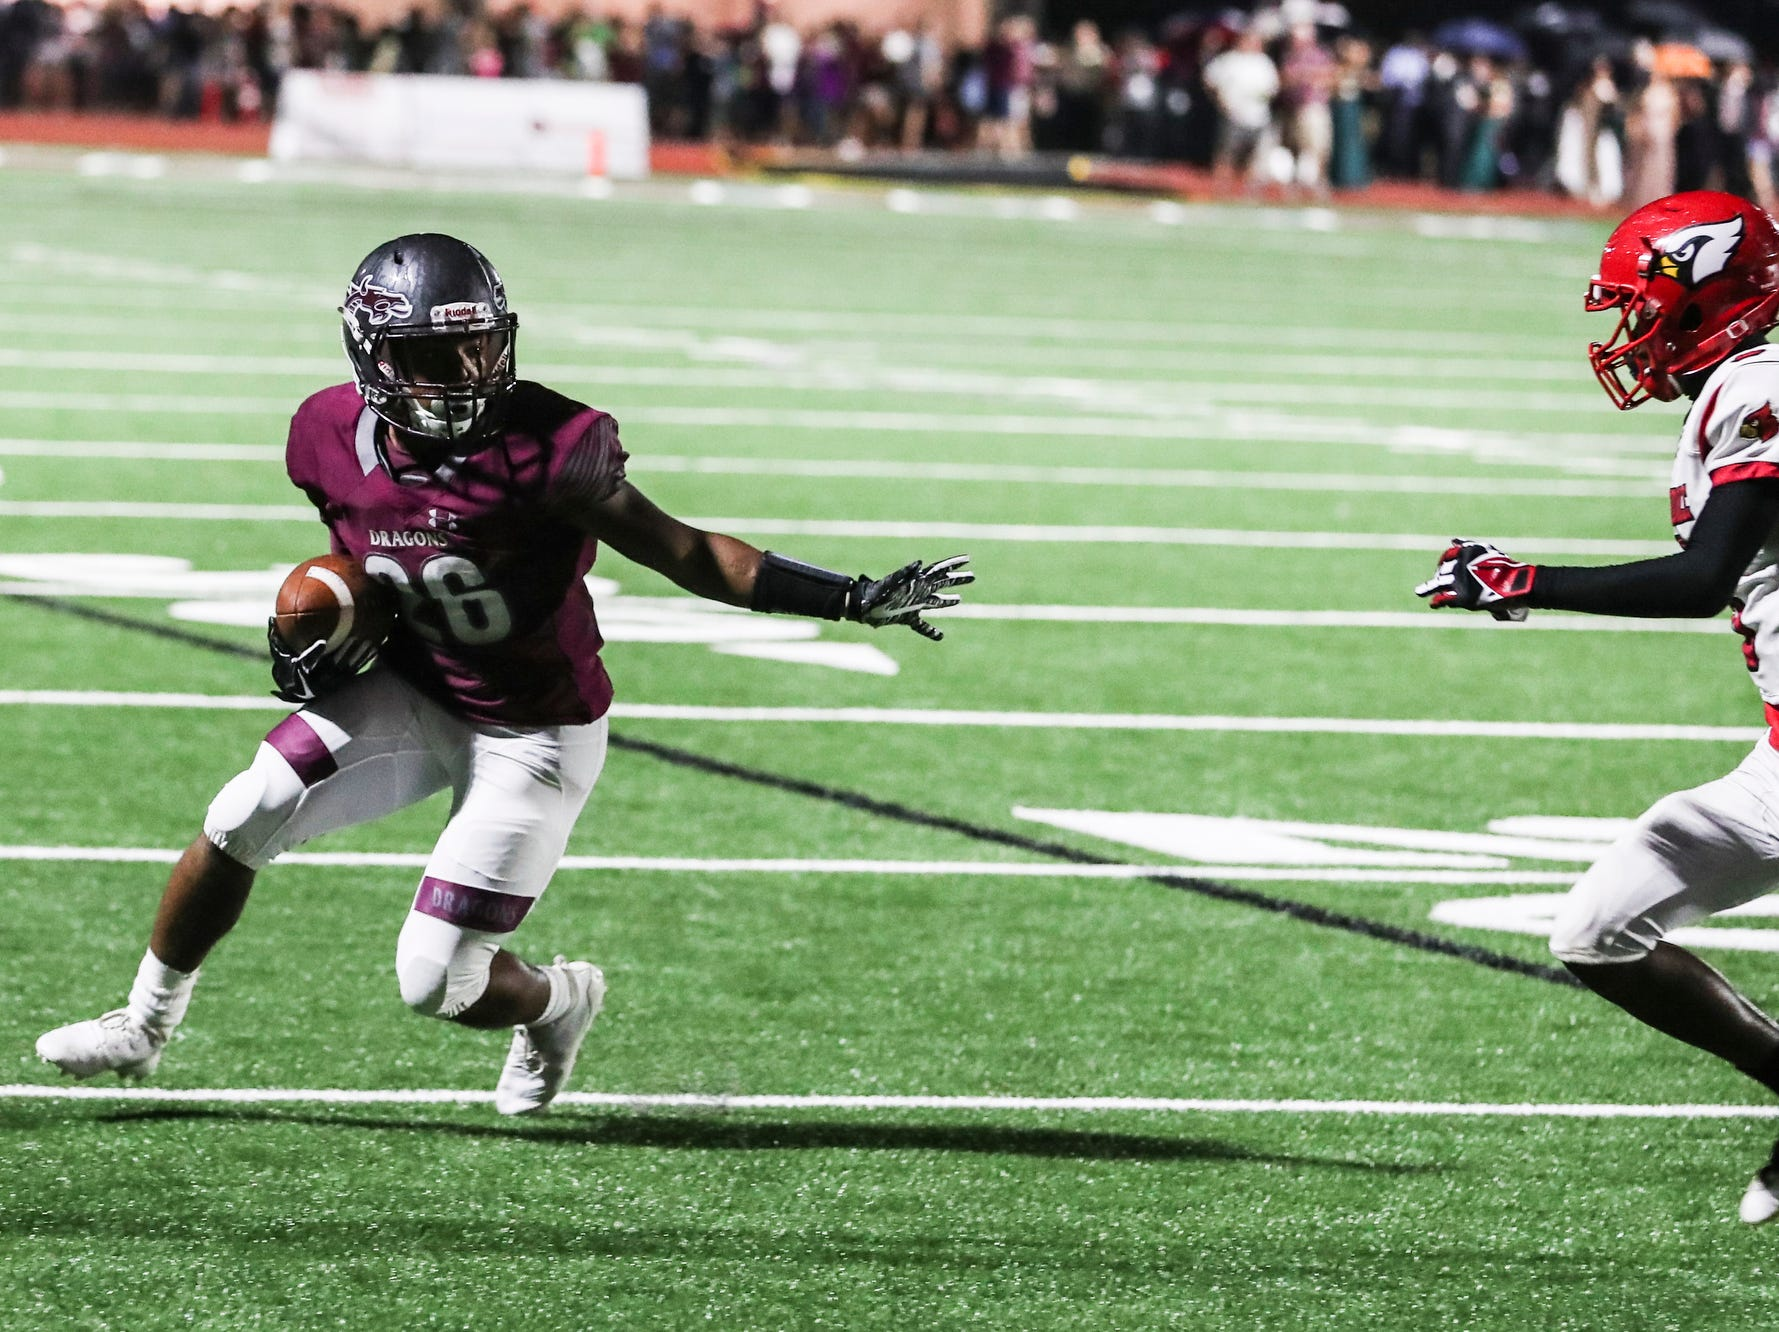 September 21 2018 - Collierville's Caleb Harris runs with the ball during Friday night's game versus Wooddale at Collierville High School.